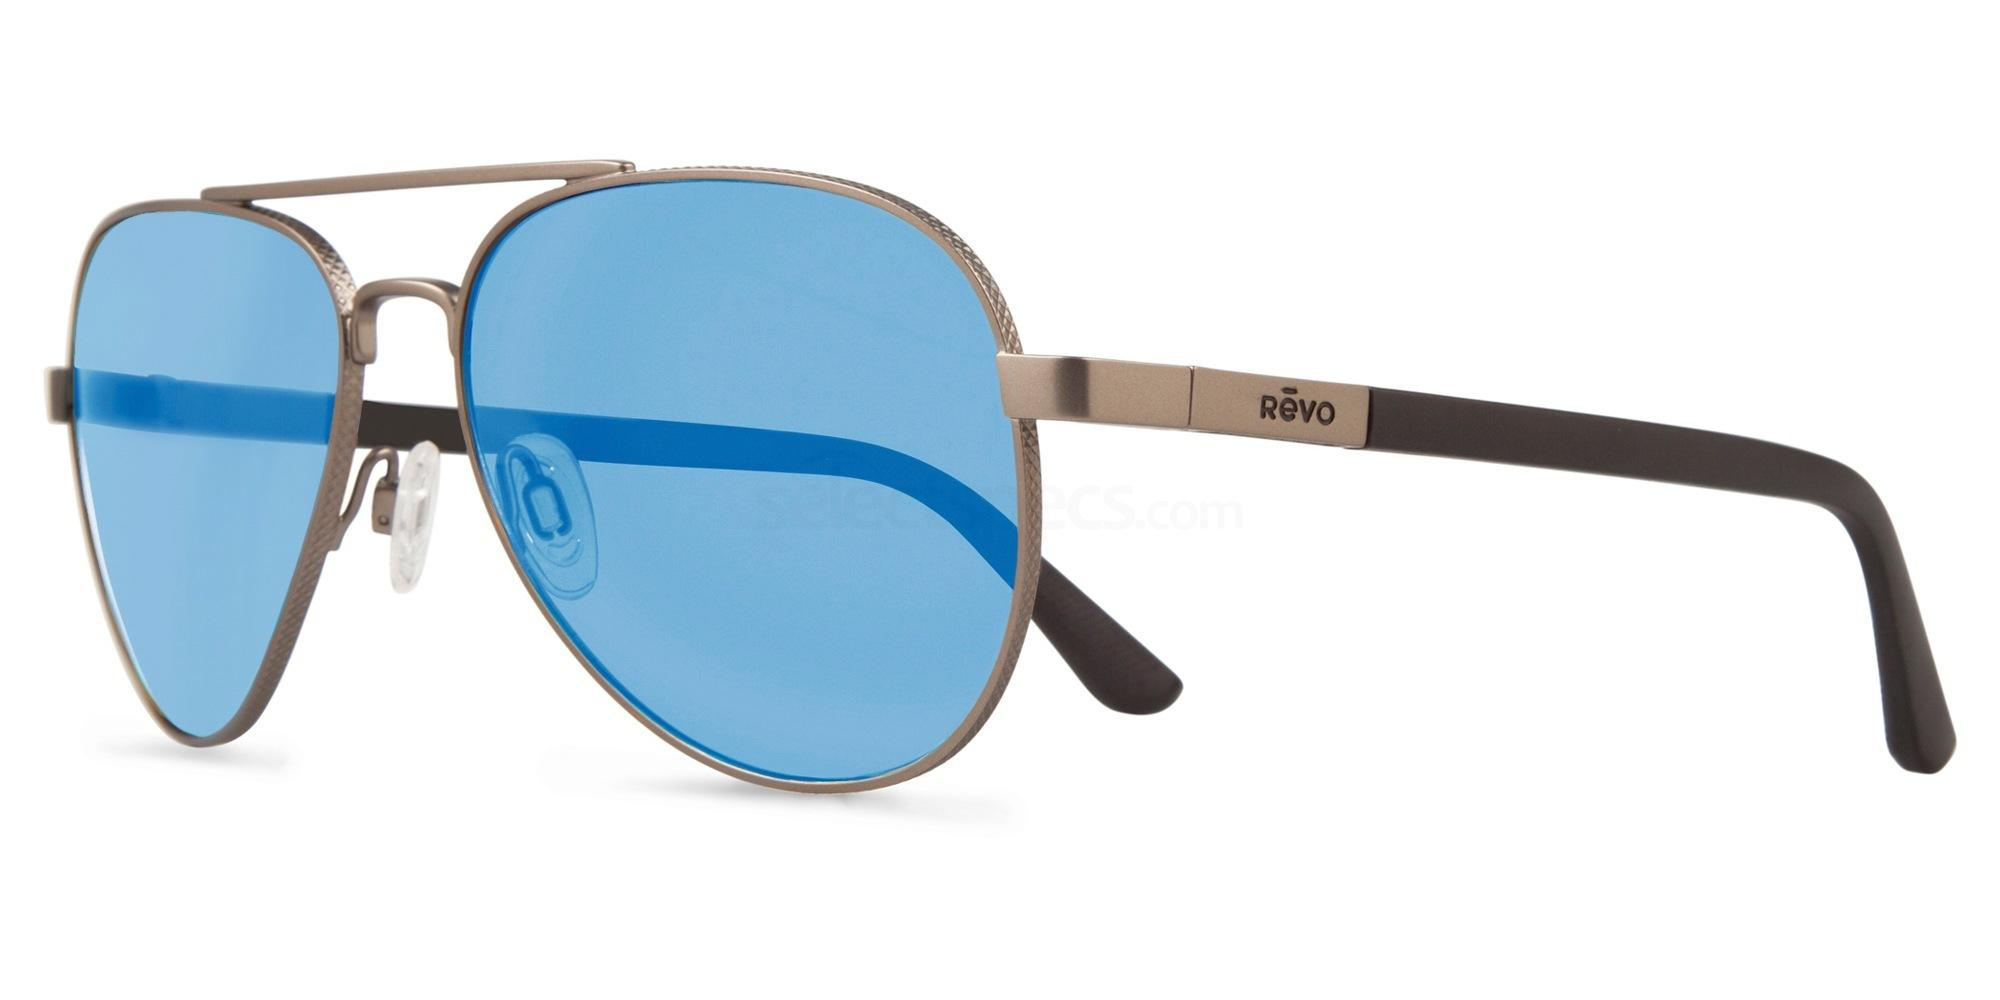 Revo Raconteur RE1011 sunglasses